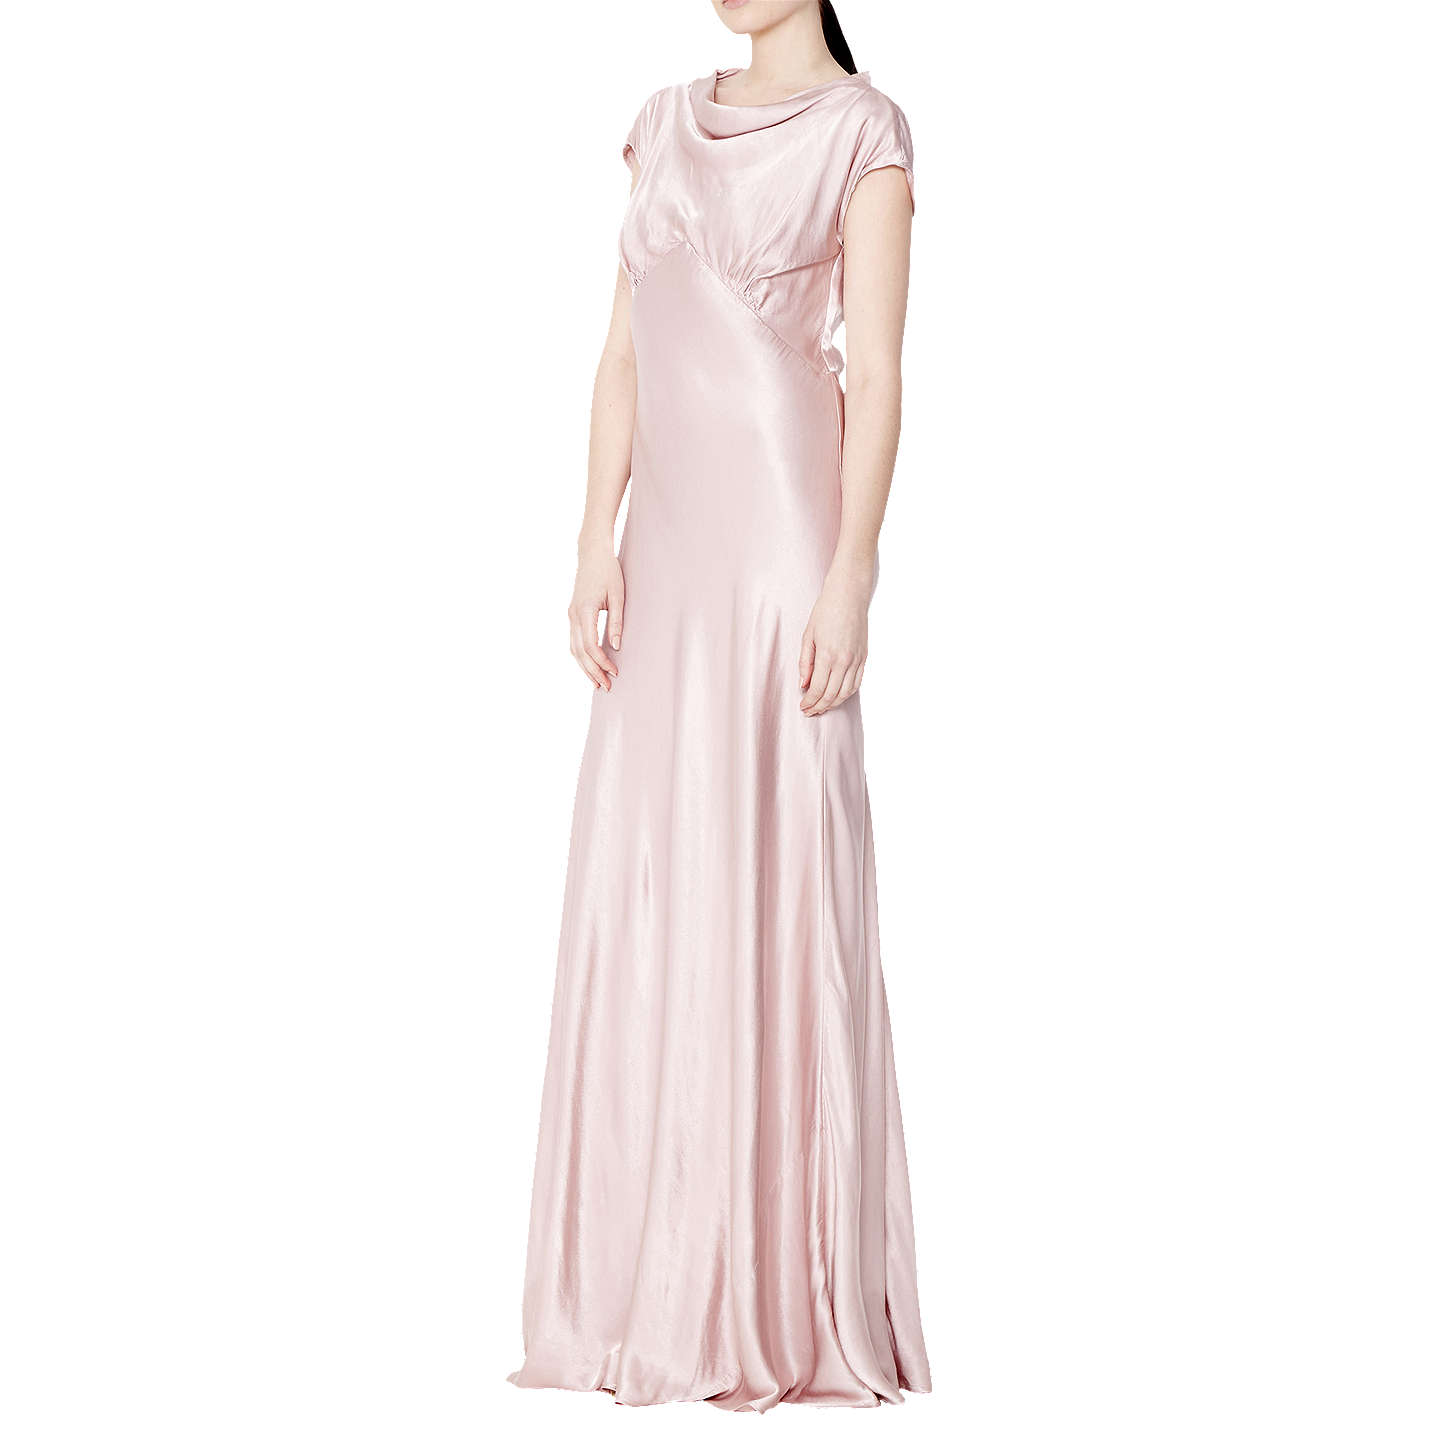 BuyGhost Lyra Dress, Boudoir Pink, XS Online at johnlewis.com